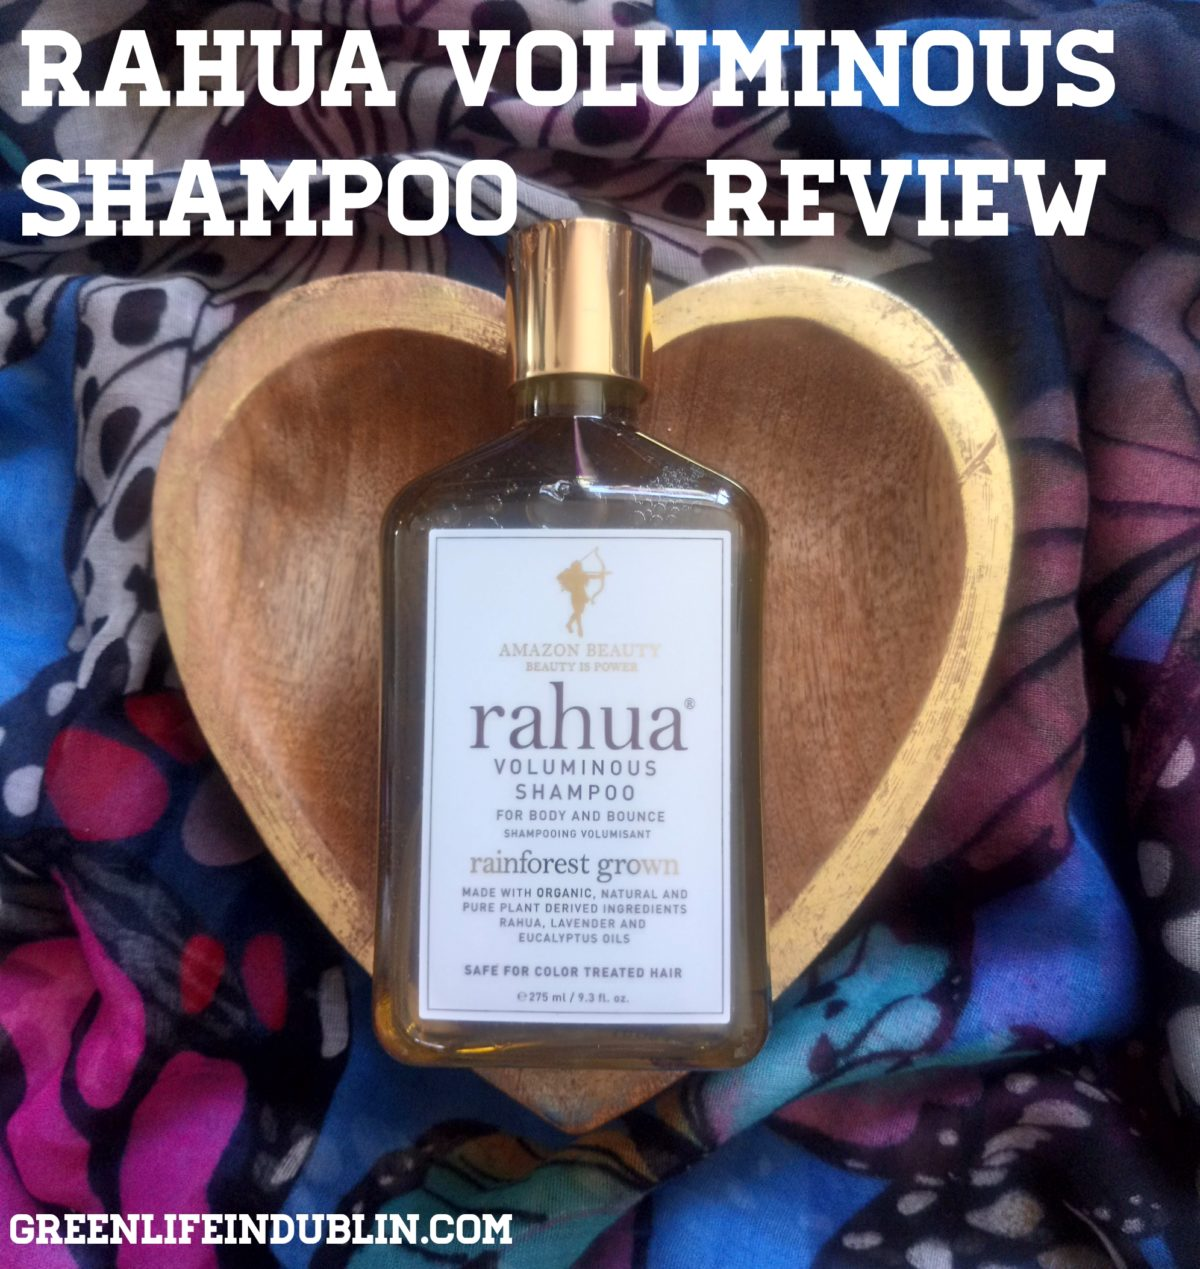 Rahua Voluminous Shampoo Review